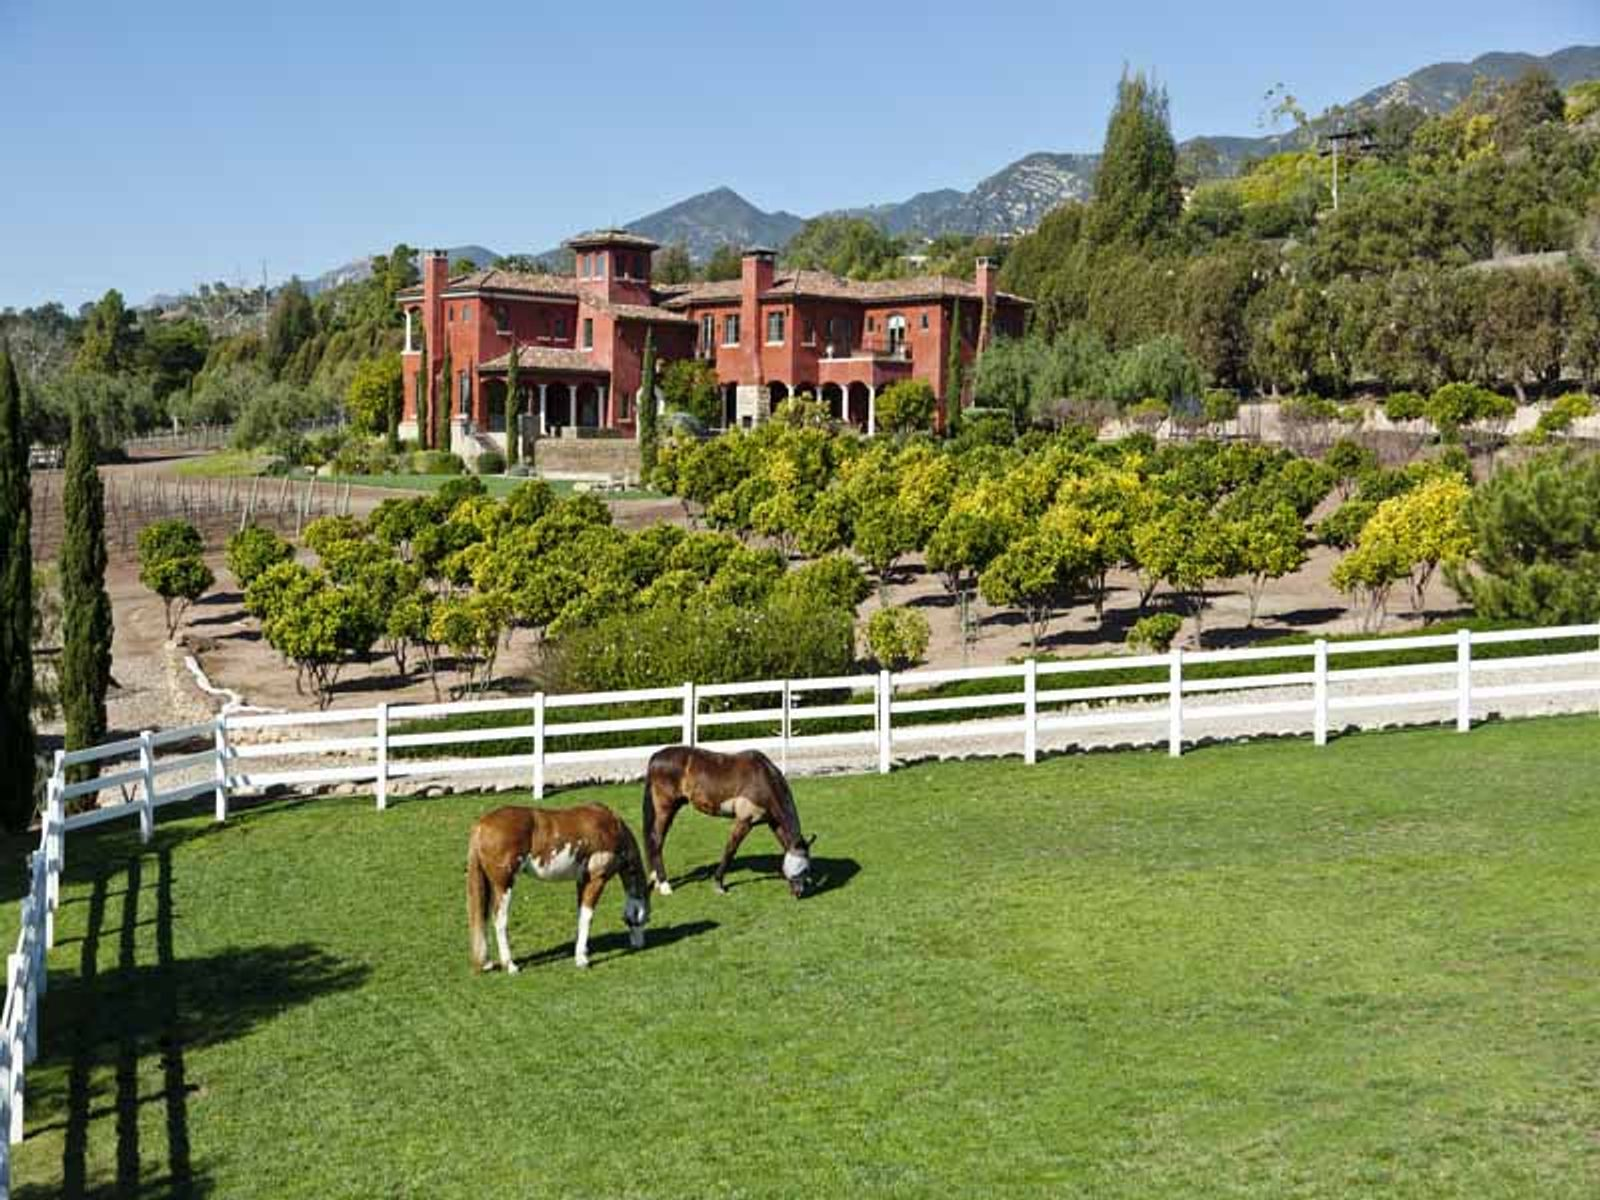 Santa Barbara Vineyard Equestrian Estate, Carpinteria CA Ranch / Farm - Santa Barbara Real Estate